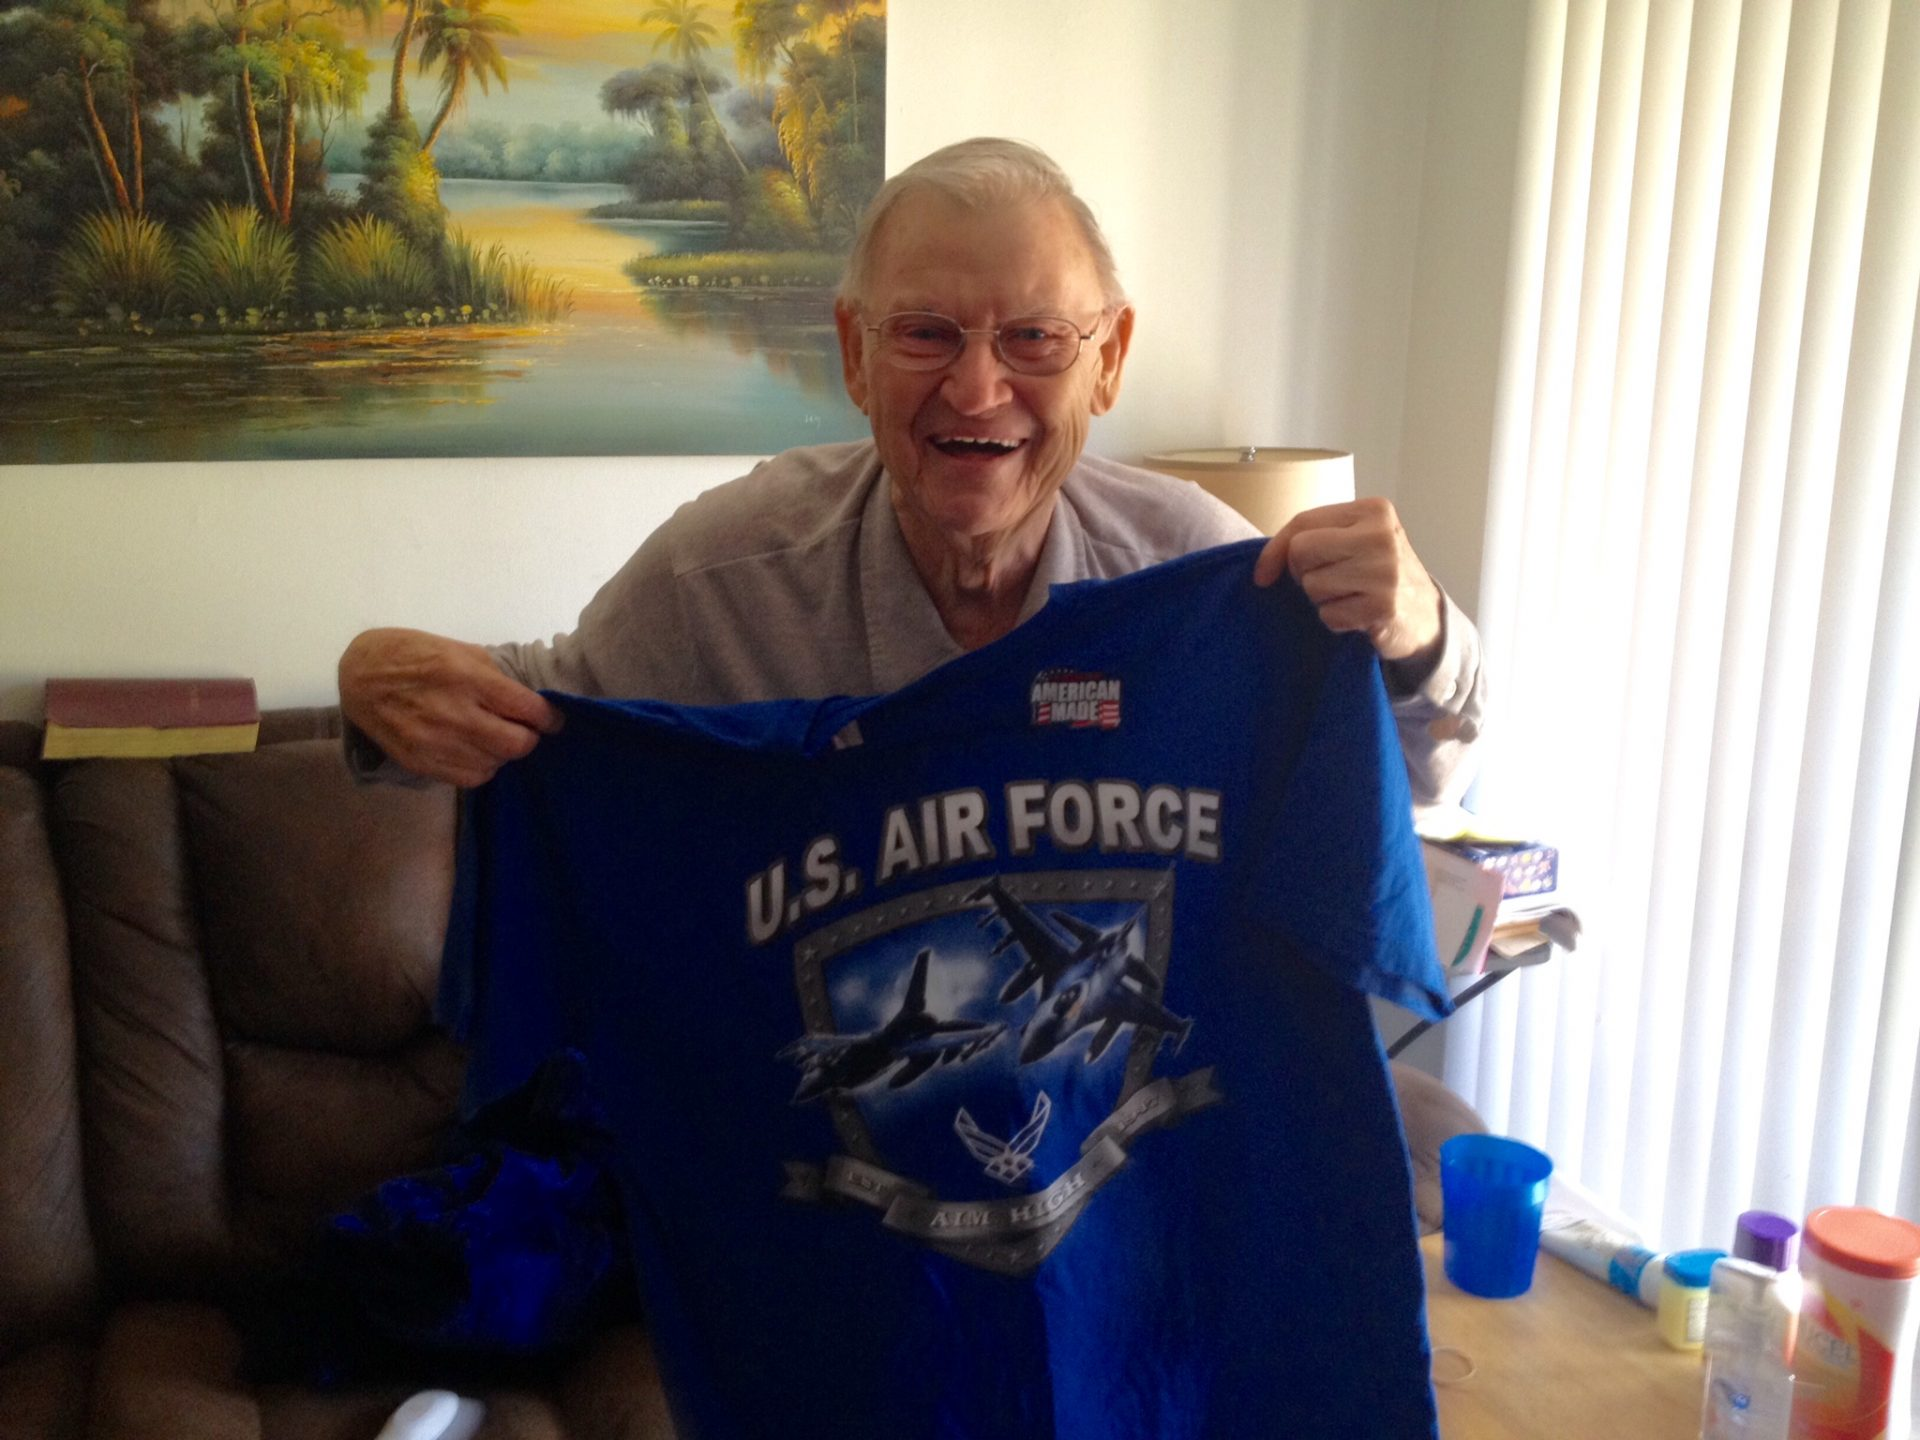 Dad with an Air Force shirt I bought him .